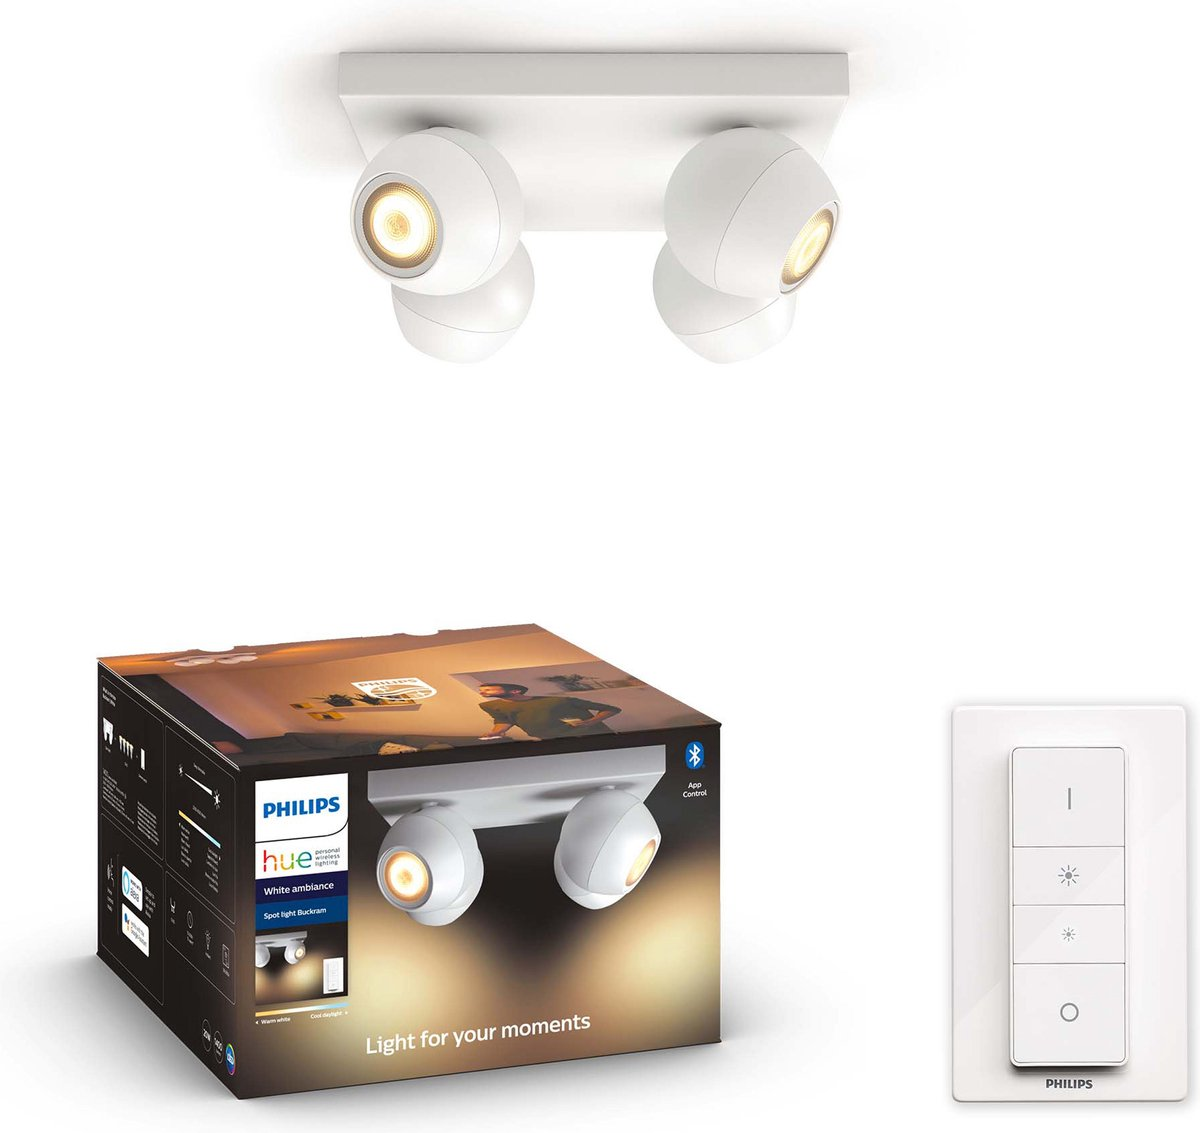 Philips Hue - BUCKRAM plate/spiral white 4x5.5W 230V - White Ambiance Bluetooth Dimmer Included